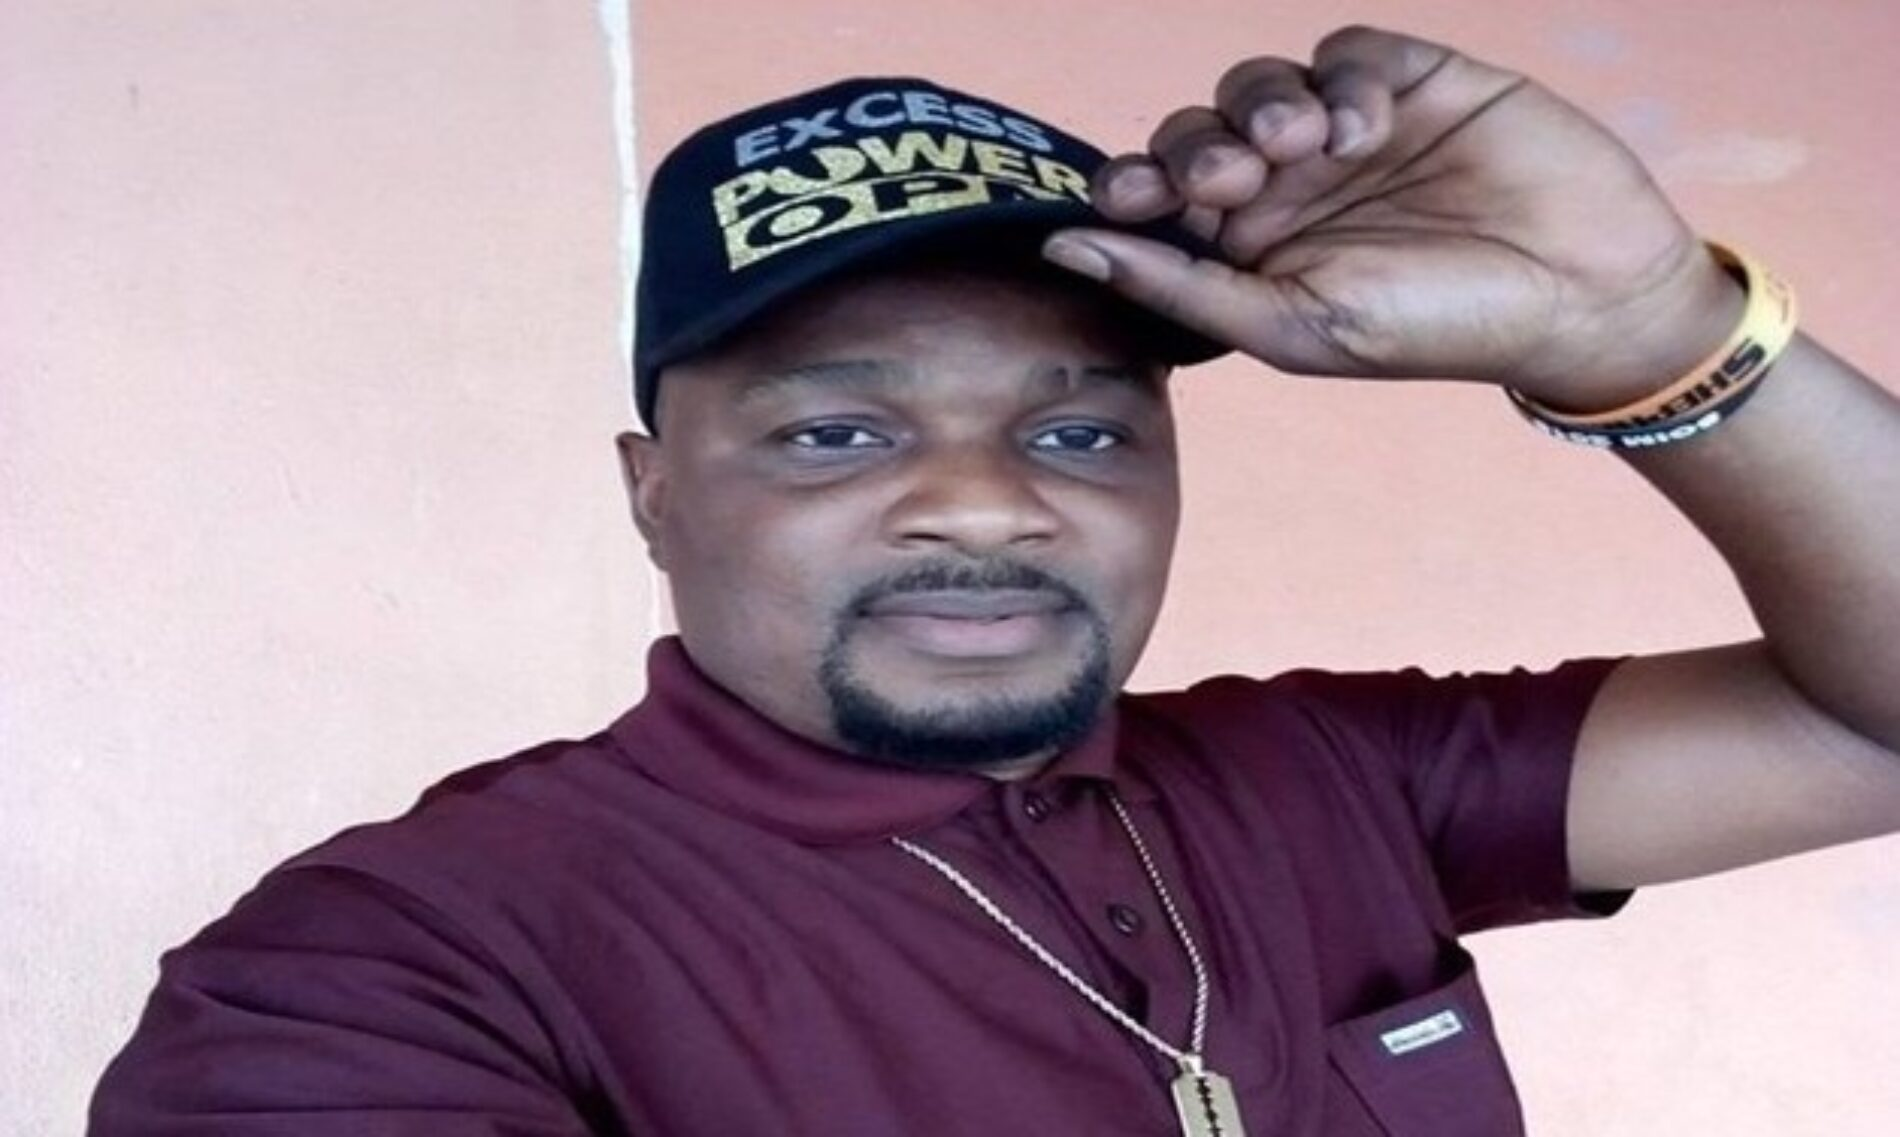 """Biafra Will Be Restored, And If You're Gay, You Better Repent Or Look For Another Country."" Nigerian Man Rants On Facebook"